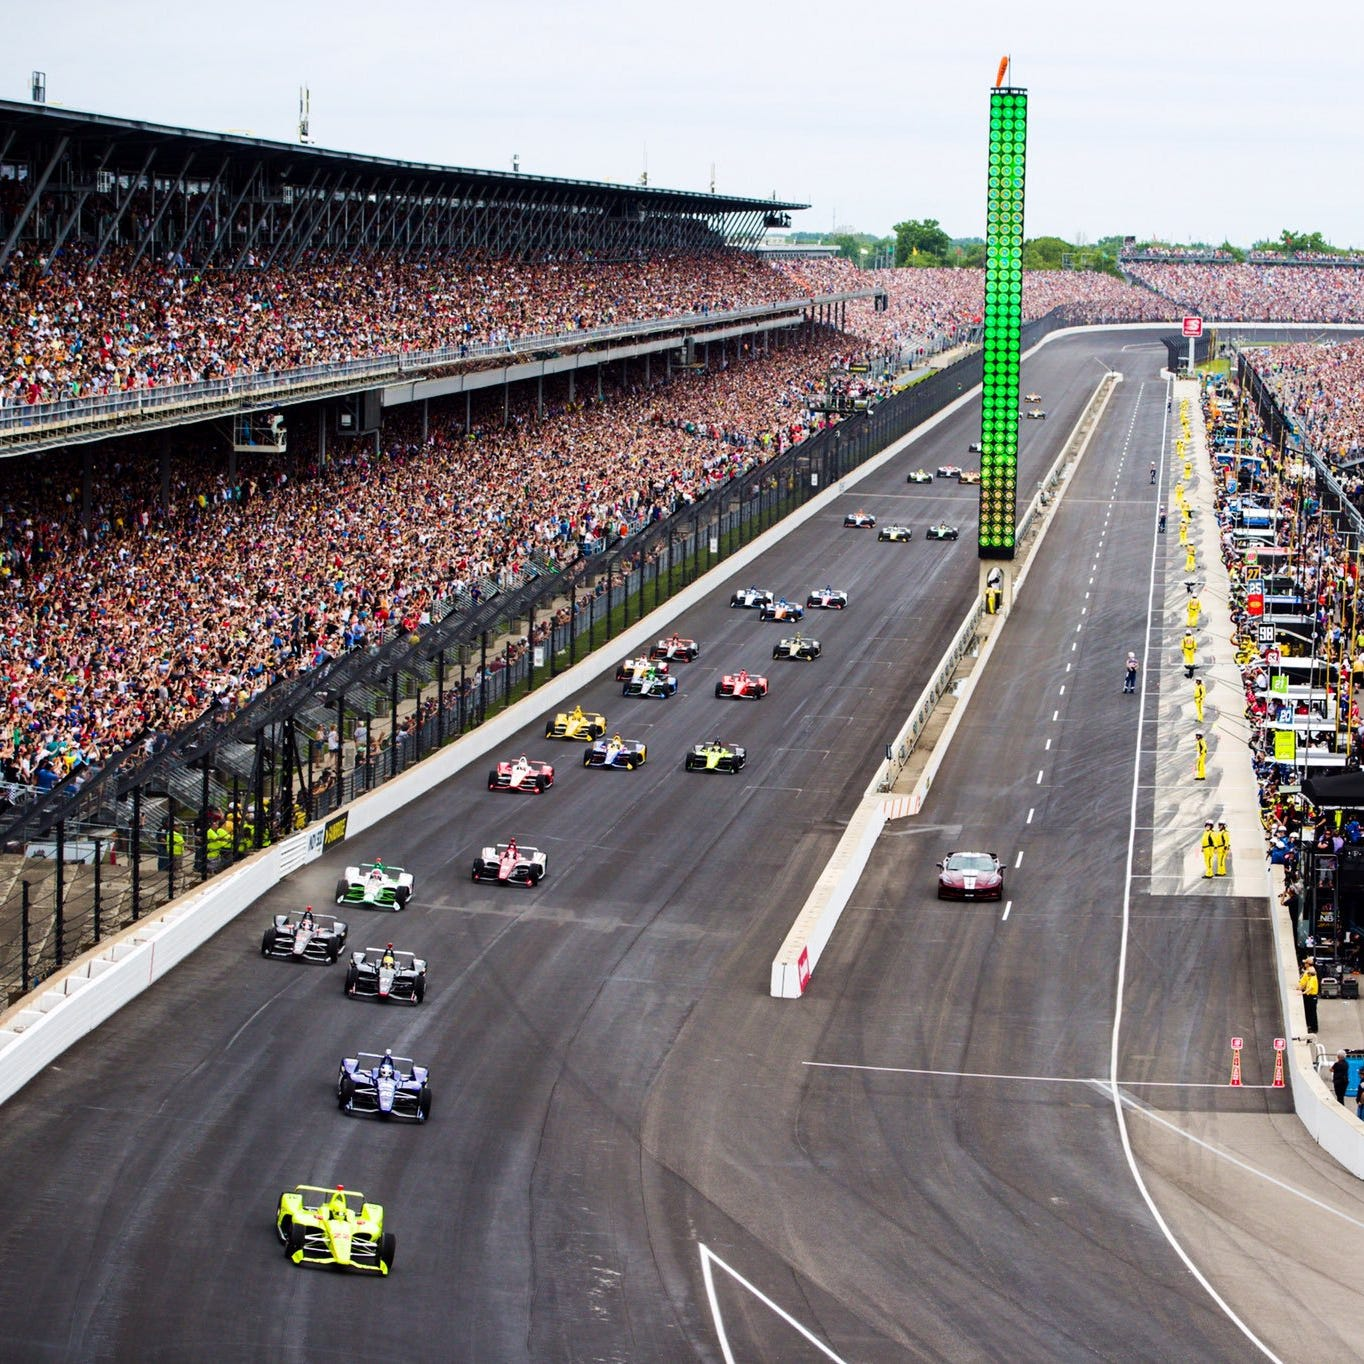 Indy 500 live blog updates: Lead changes with pit stops